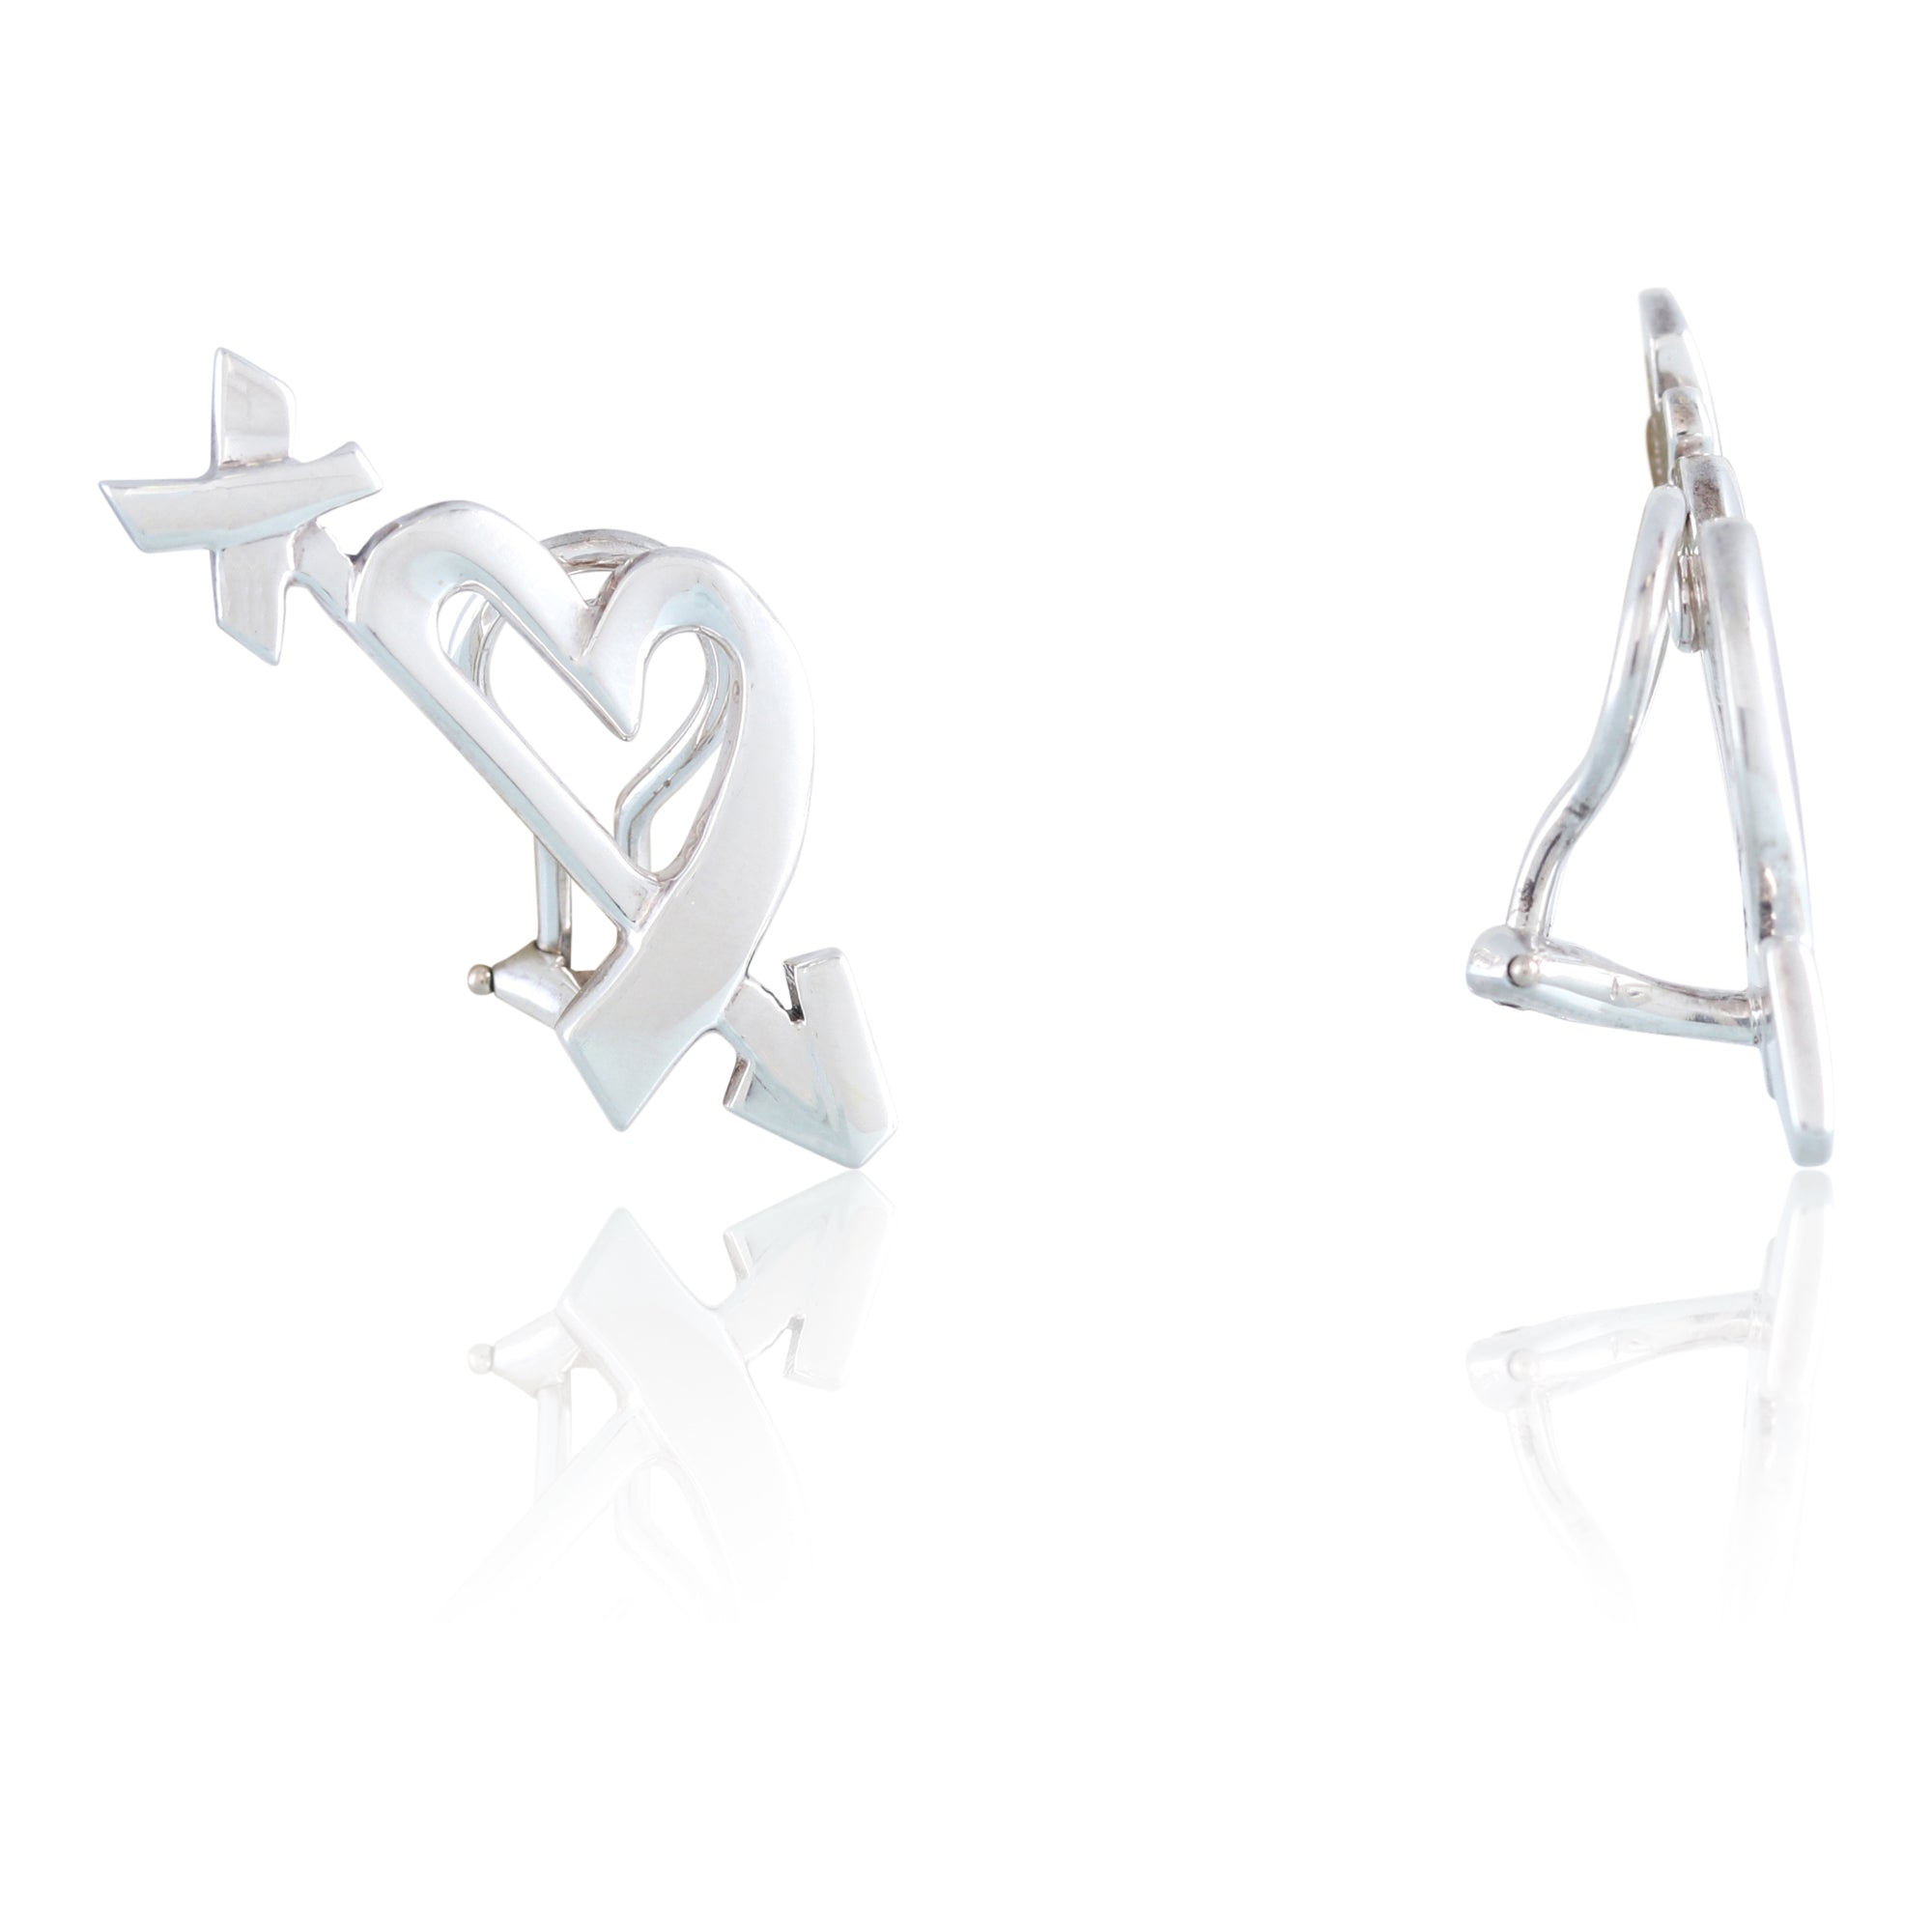 Tiffany & Co Hearts and Arrows Earrings | The Conrad